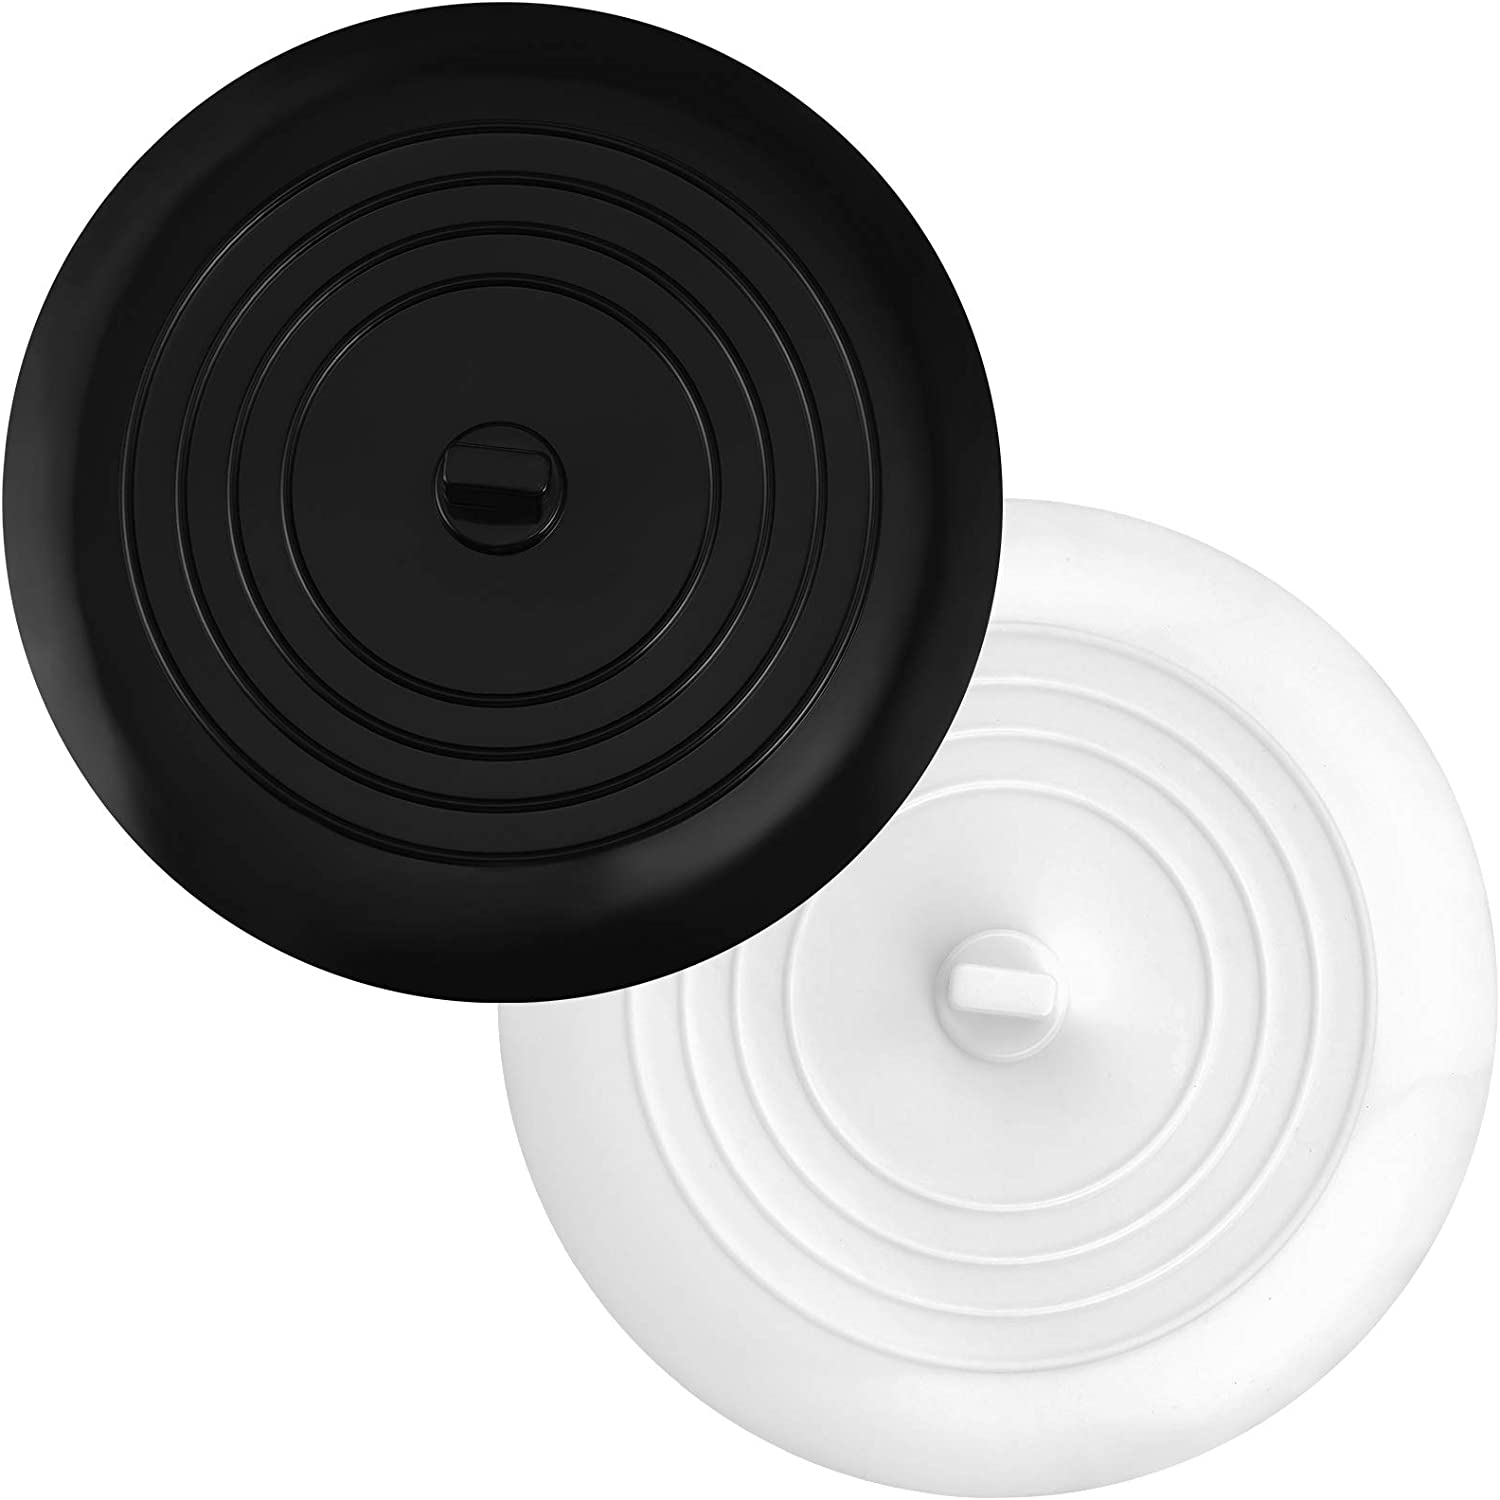 Altalsby Bathtub Stoppers 2 Max 81% OFF Pack Rep Free Shipping Cheap Bargain Gift Drain Tub Silicone Stopper